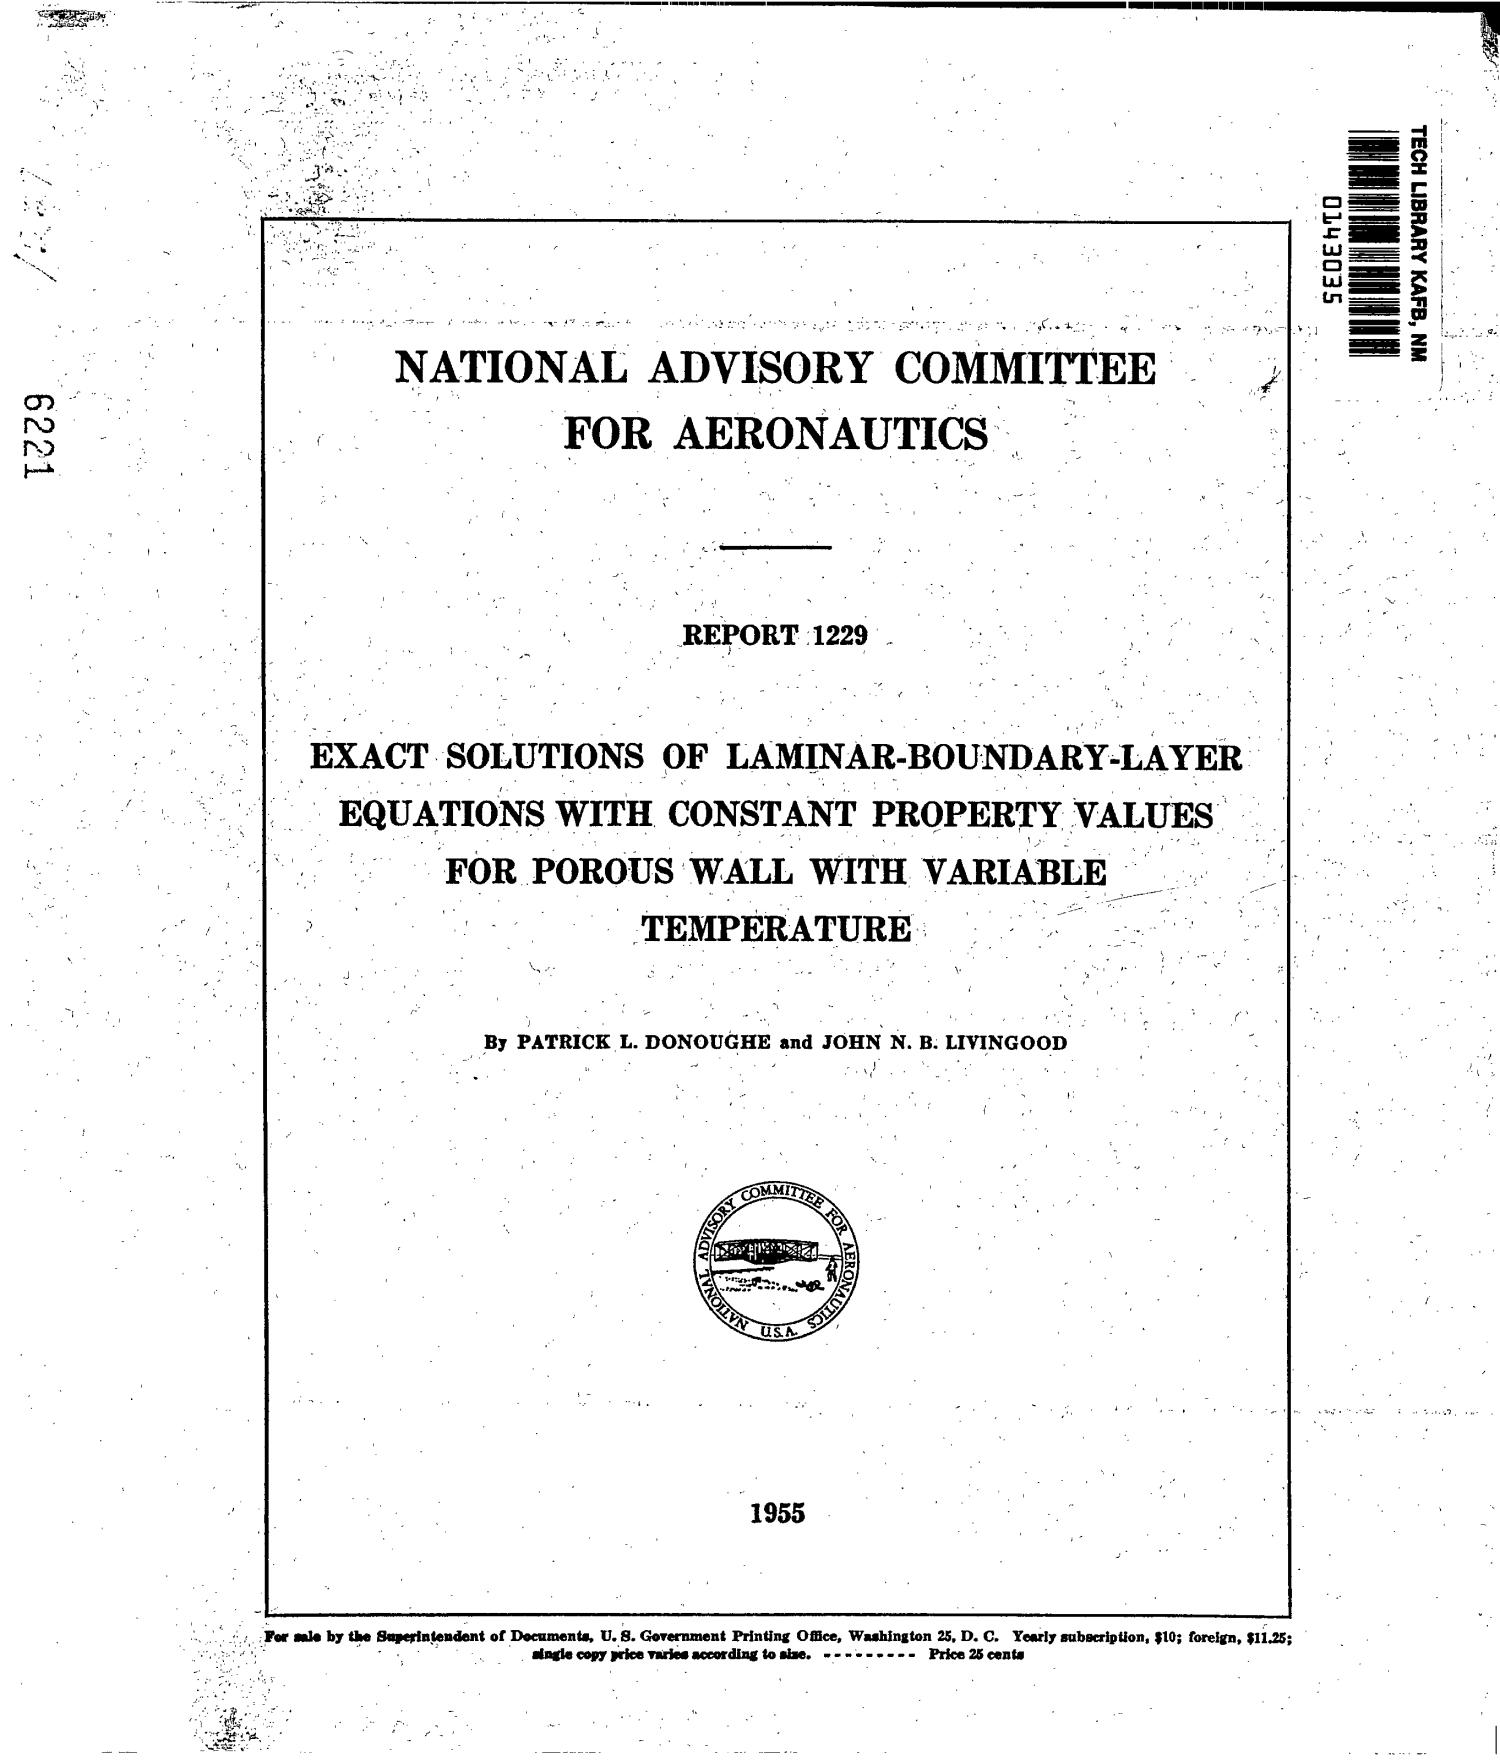 Exact solutions of laminar-boundary-layer equations with constant property values for porous wall with variable temperature                                                                                                      [Sequence #]: 1 of 24